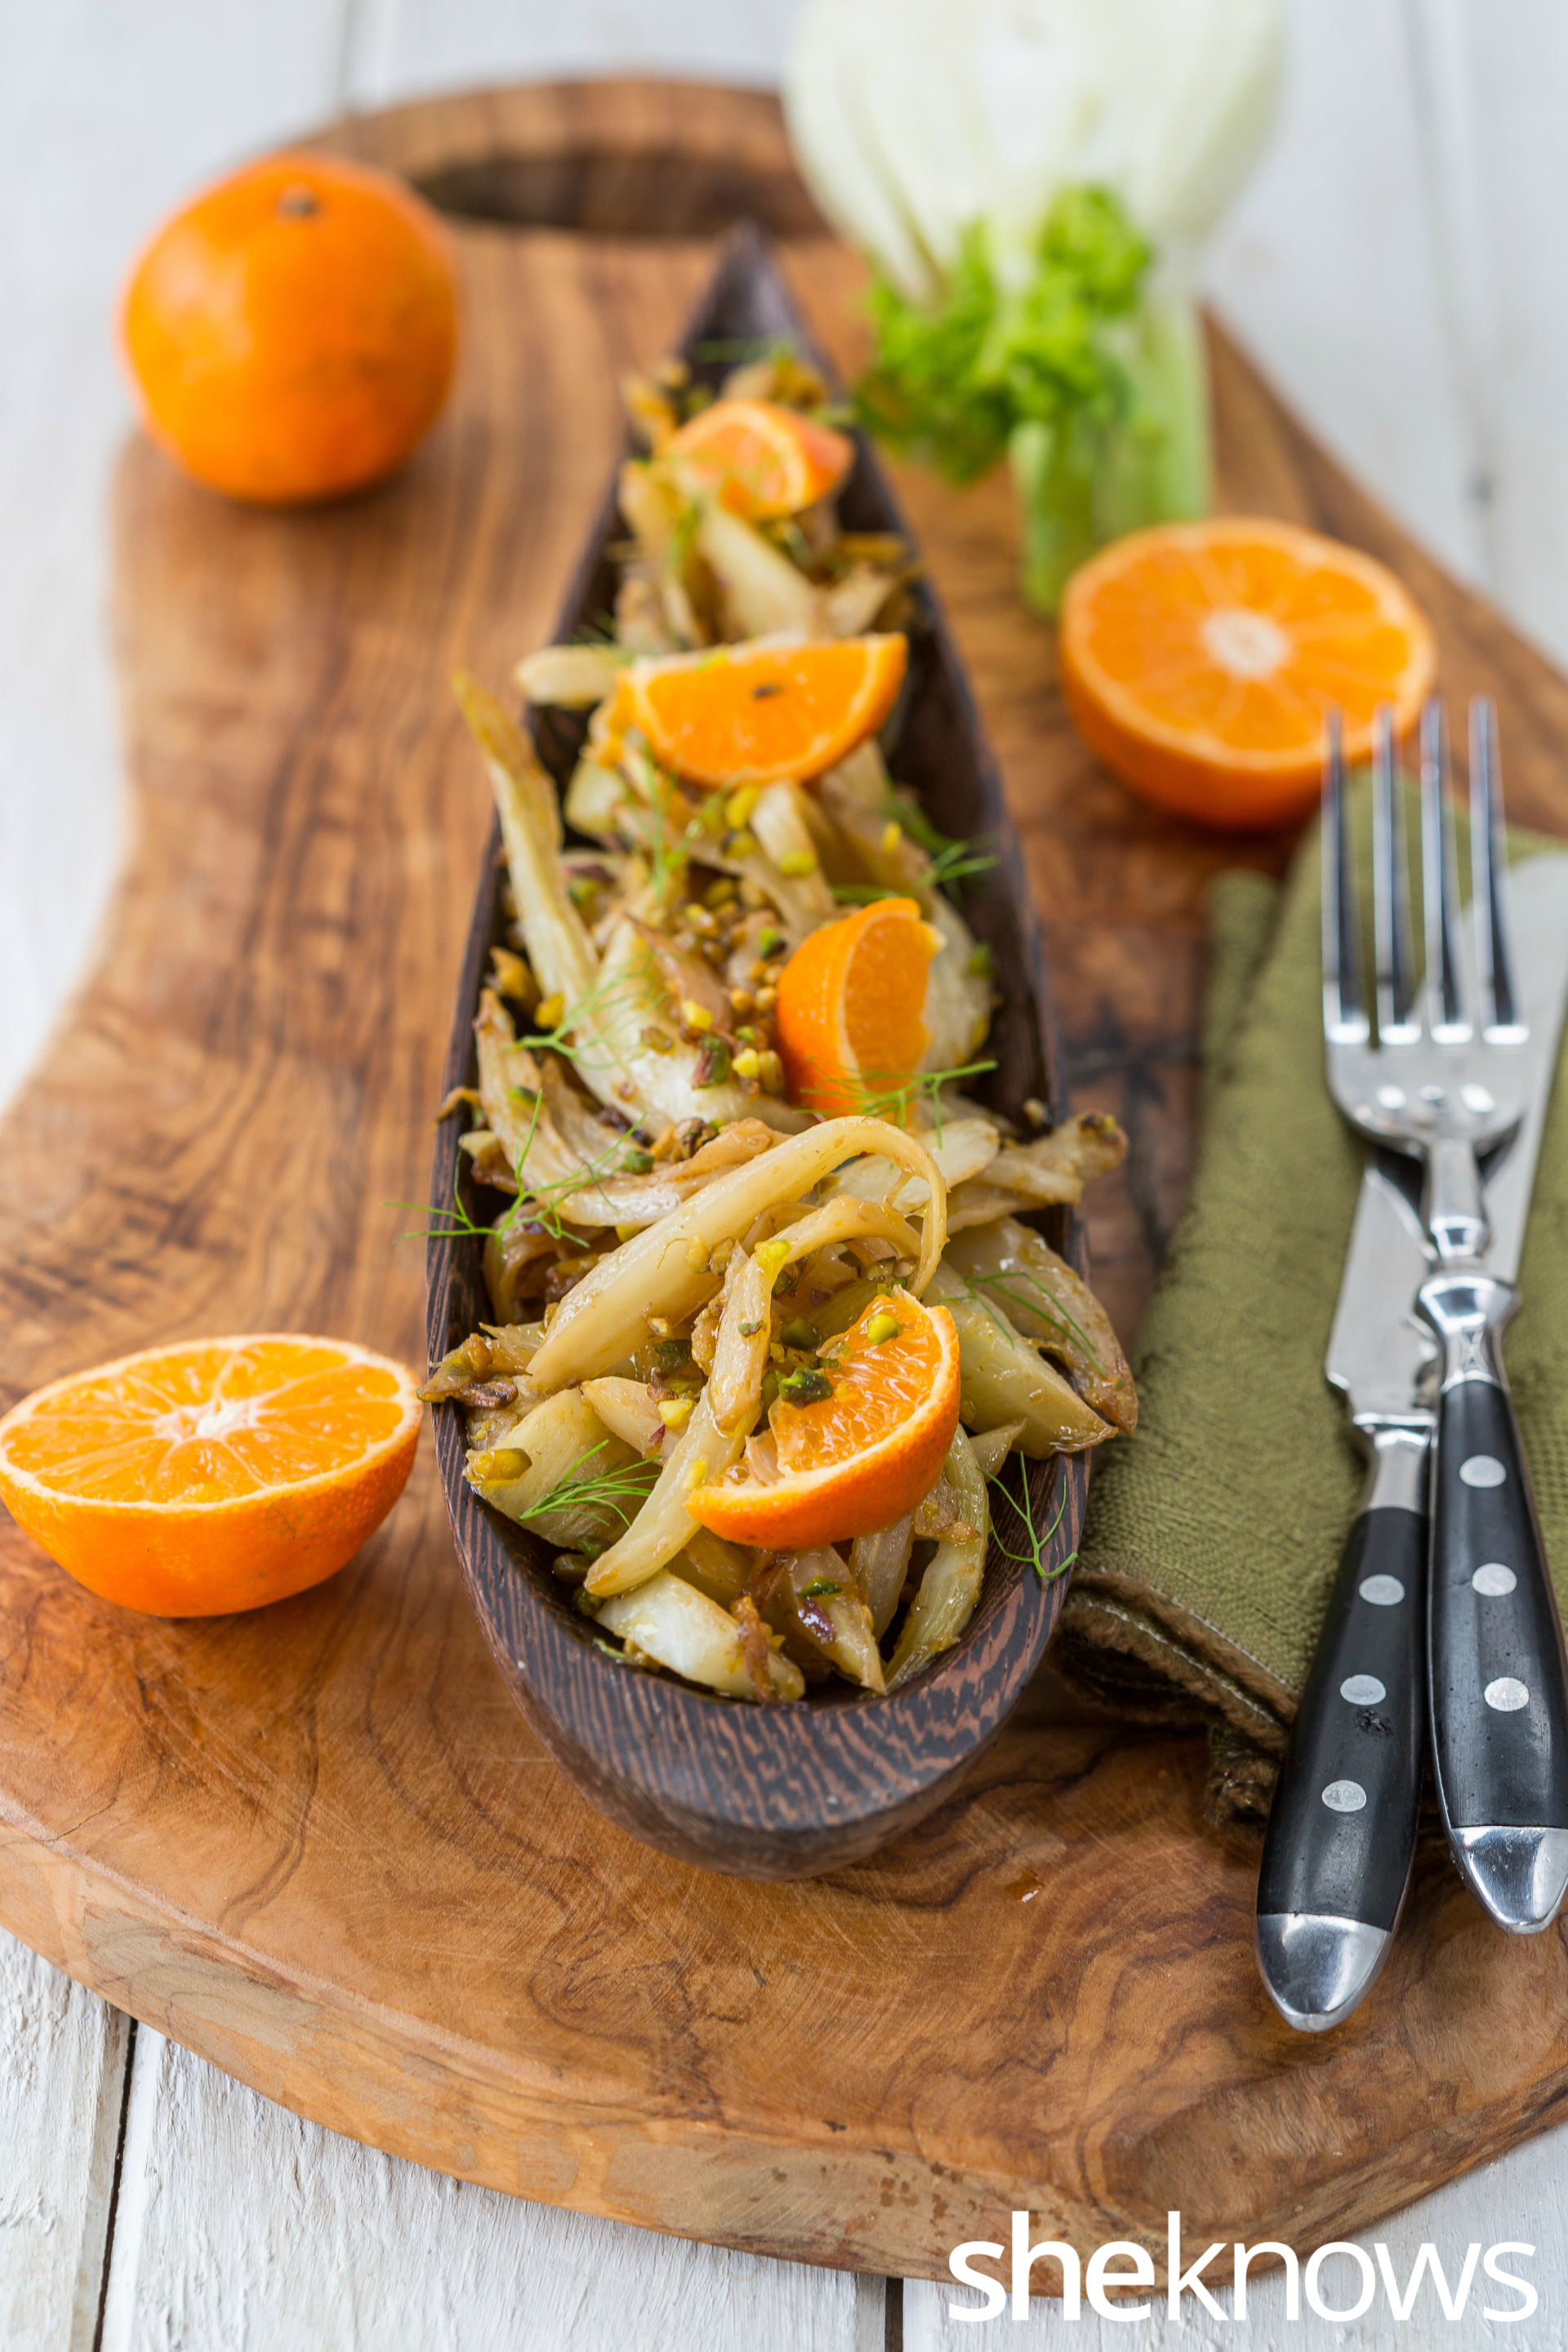 Fennel, clementines and pistachios